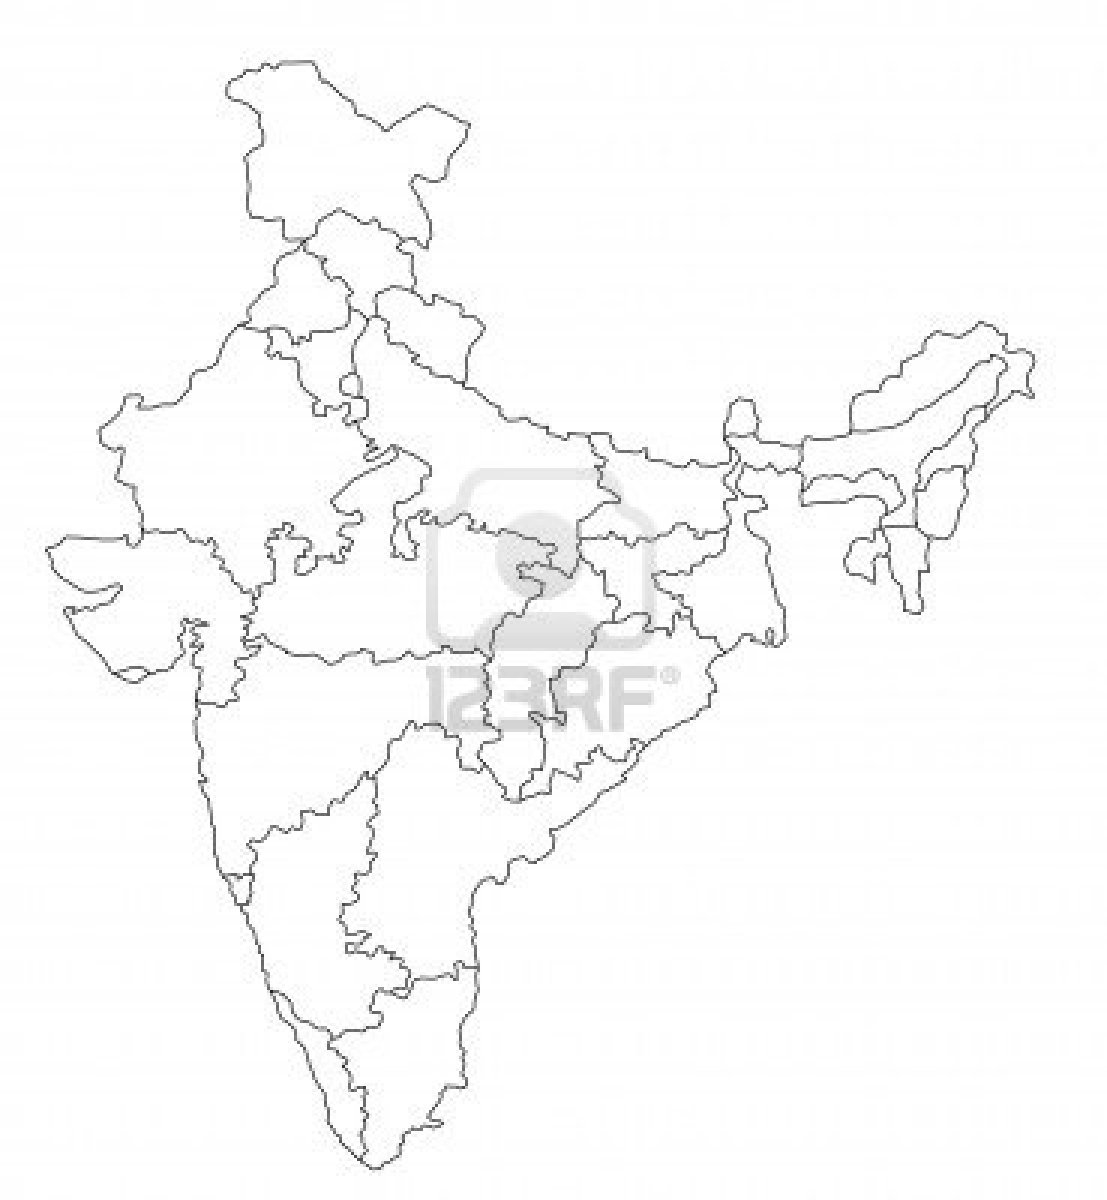 map of india coloring page free coloring pages